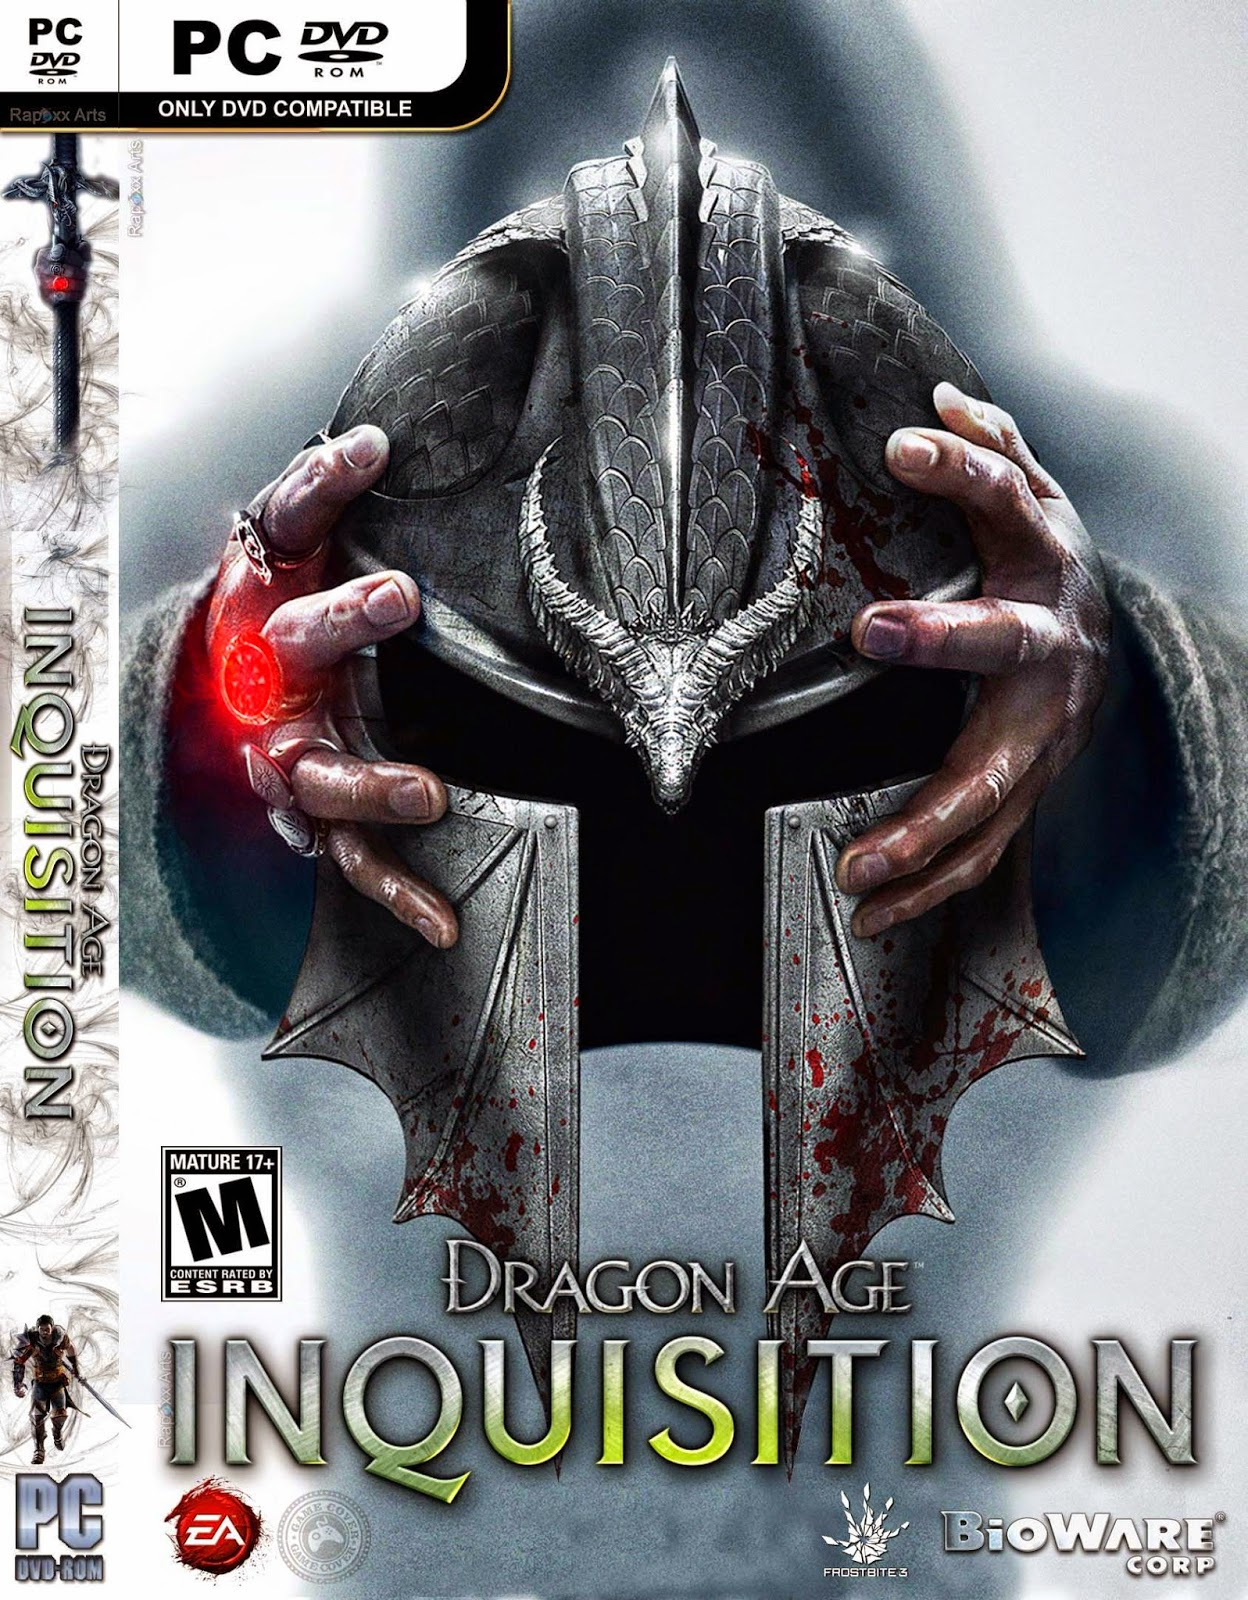 Dragon-Age-Inquisition-DVD-Cover